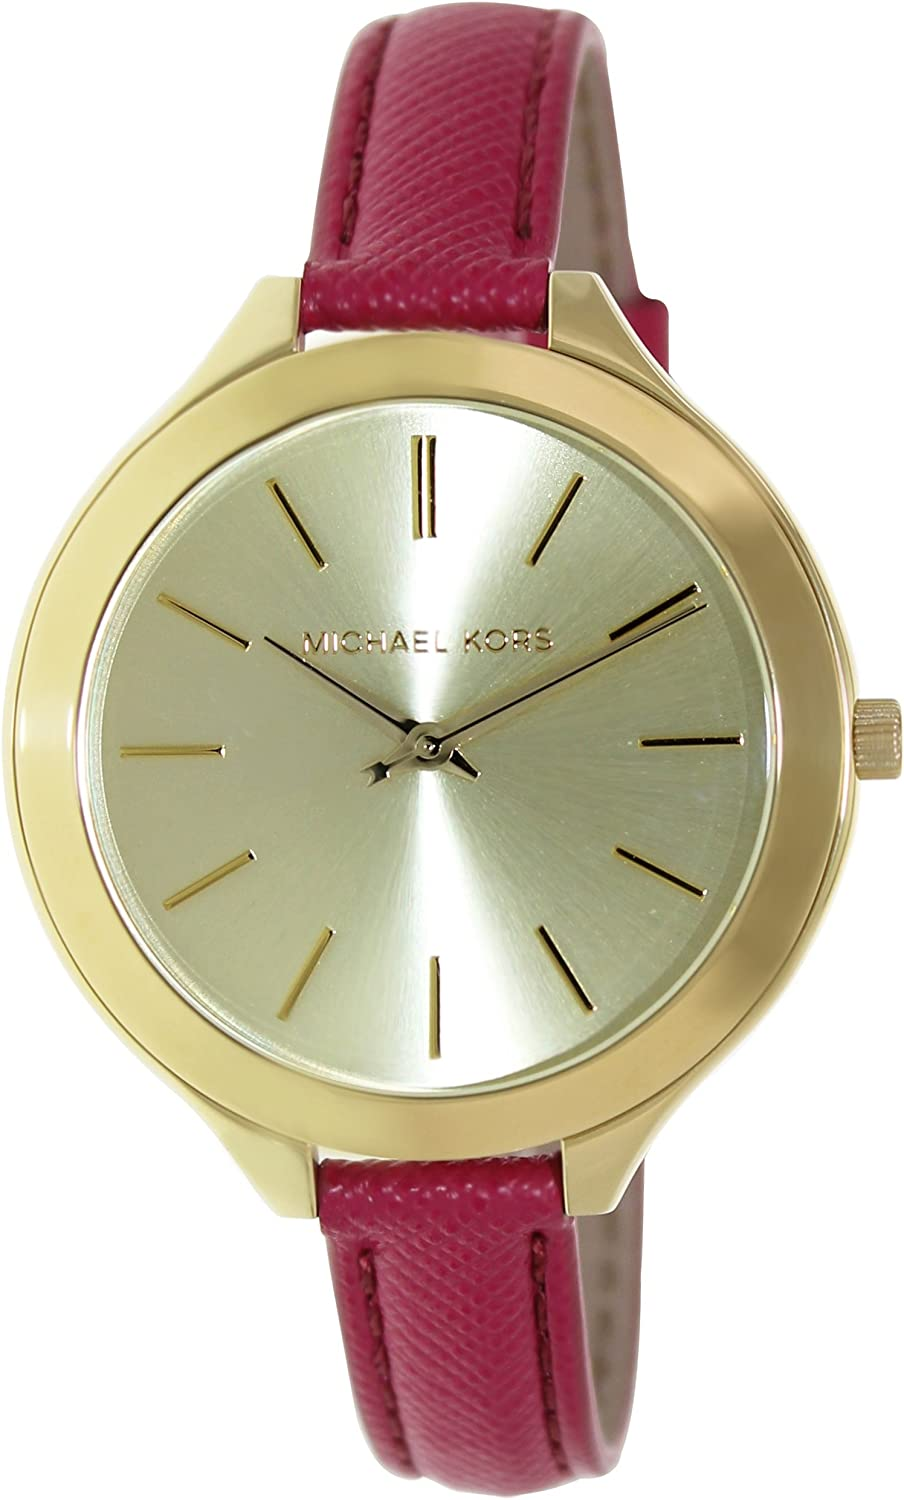 Michael Kors Women s Leather Slim Runway Watch, Gold Pink, One Size